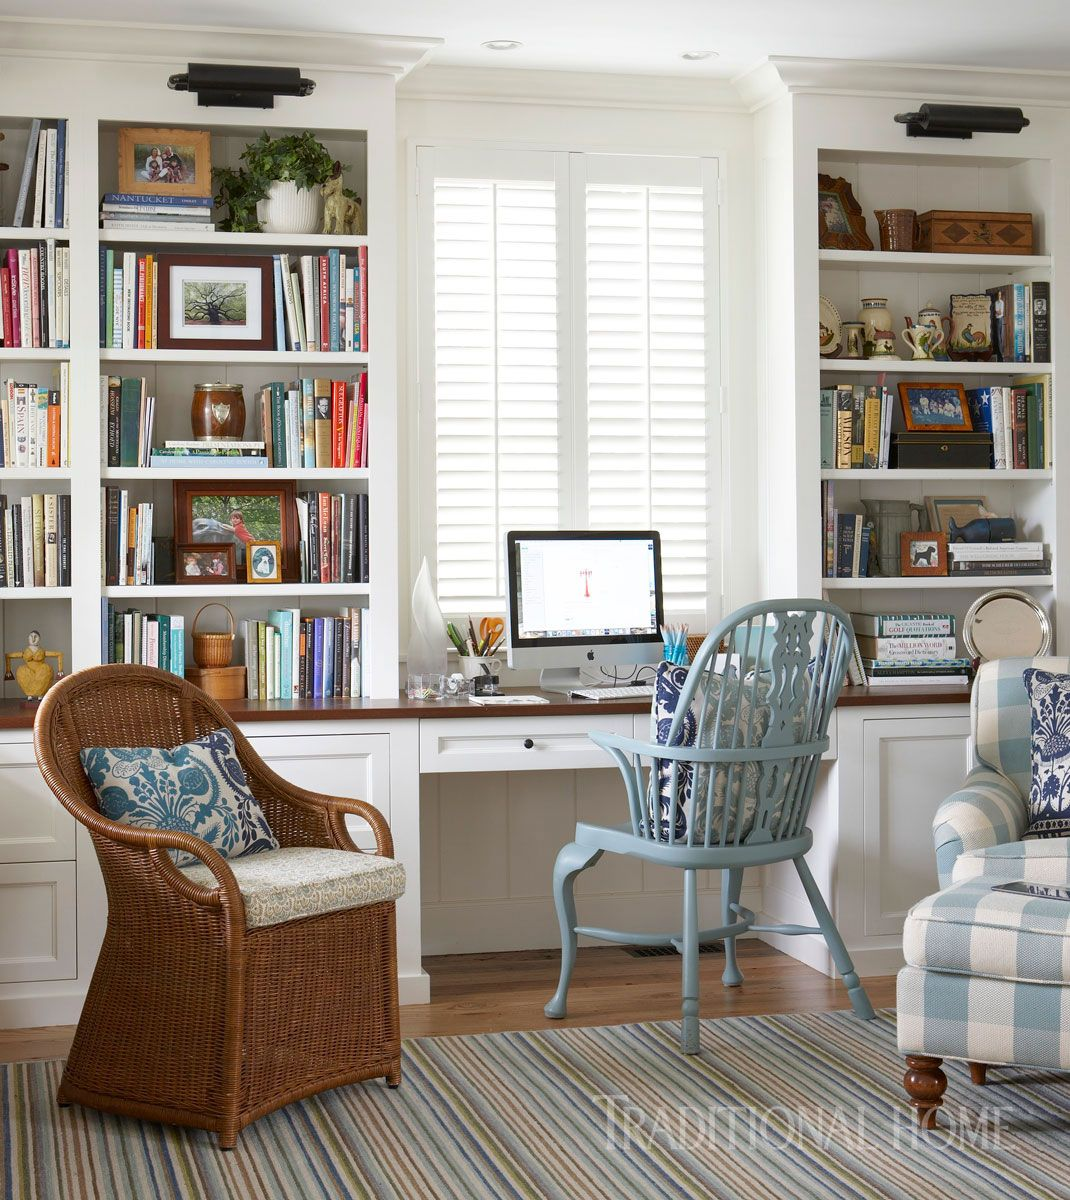 built in desk and bookcases in home office | Spacious Family Home on ...